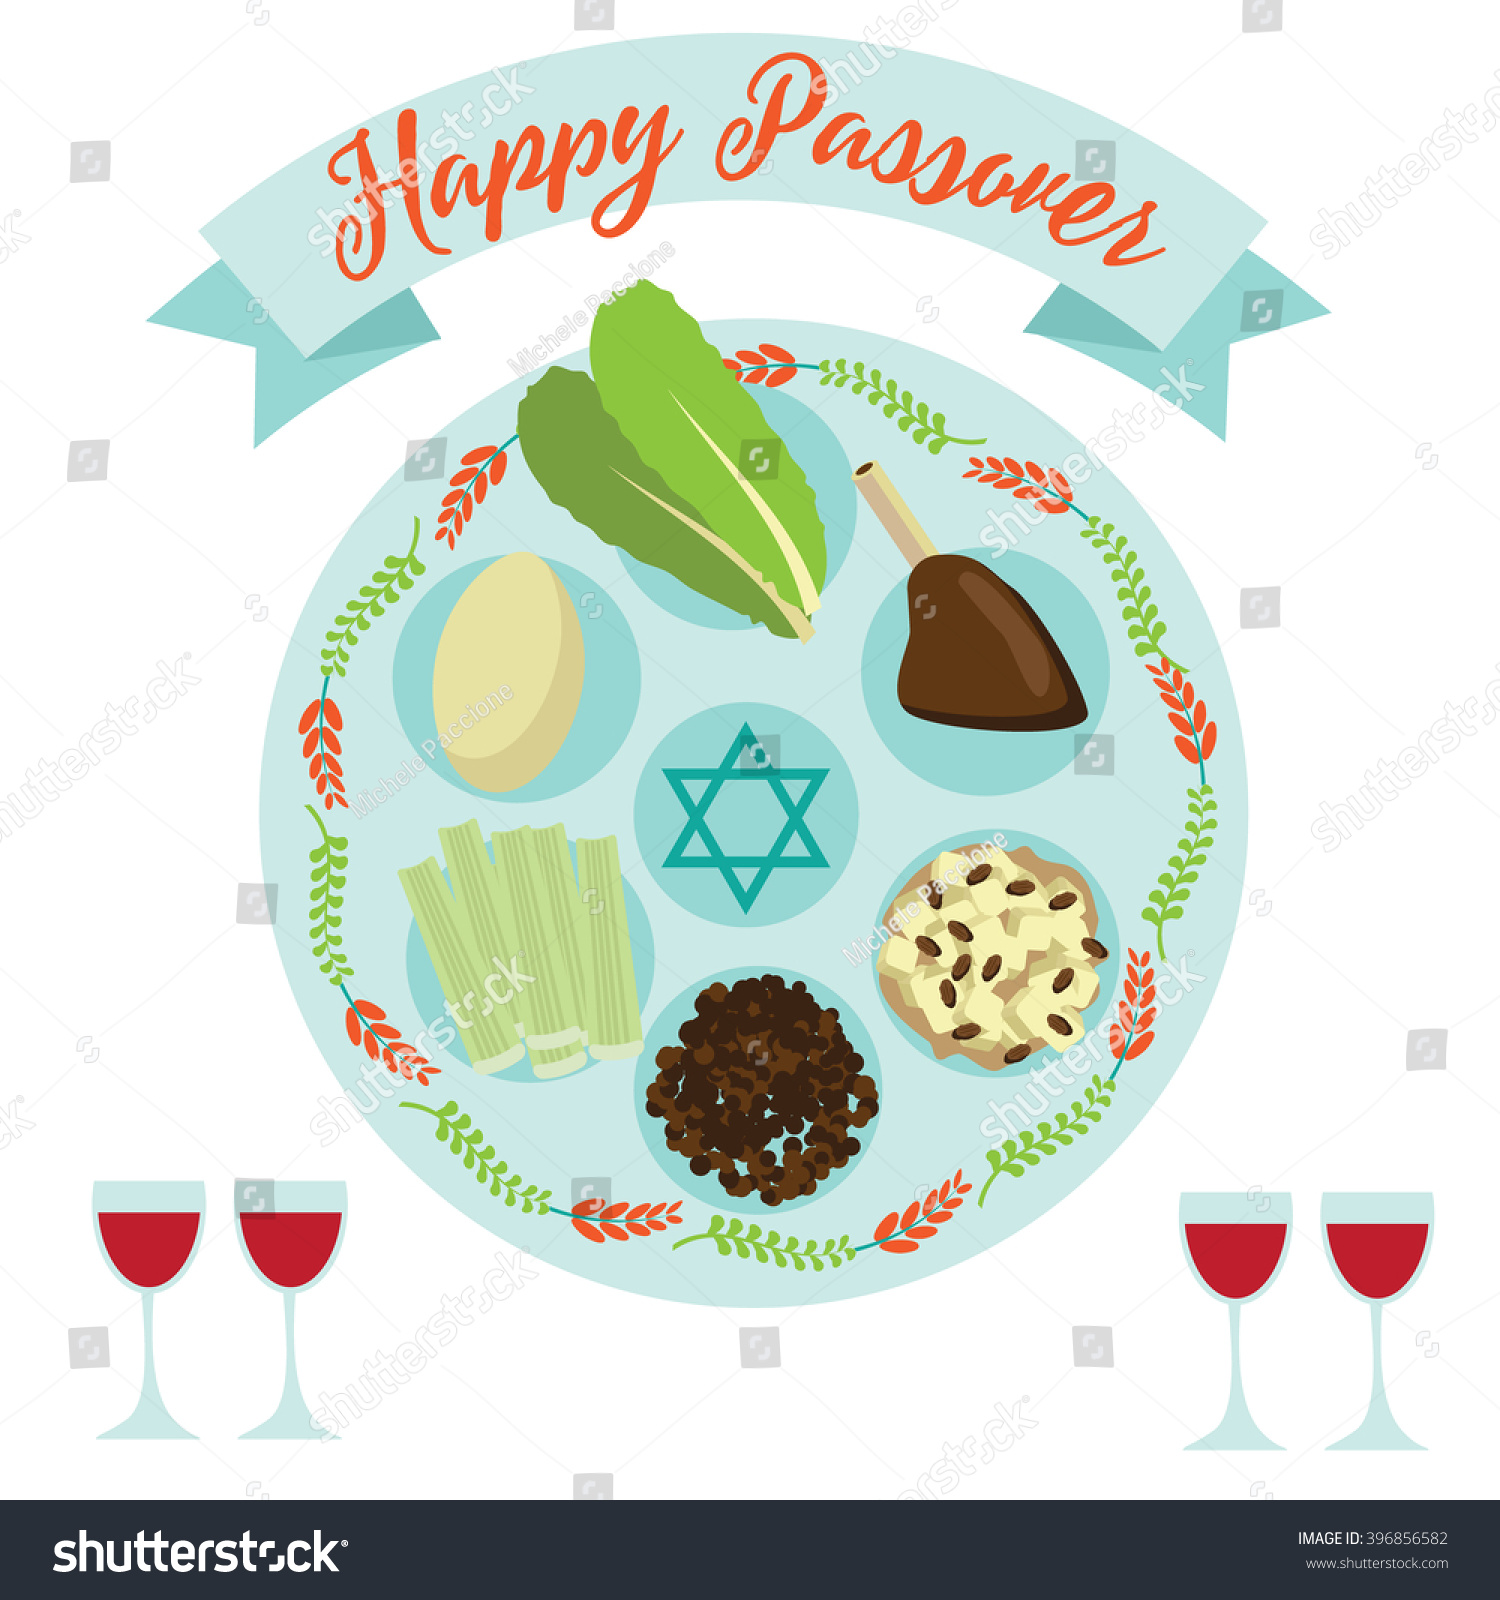 Poster design eps - Happy Passover Seder Meal Greeting Card Poster Design Eps 10 Vector